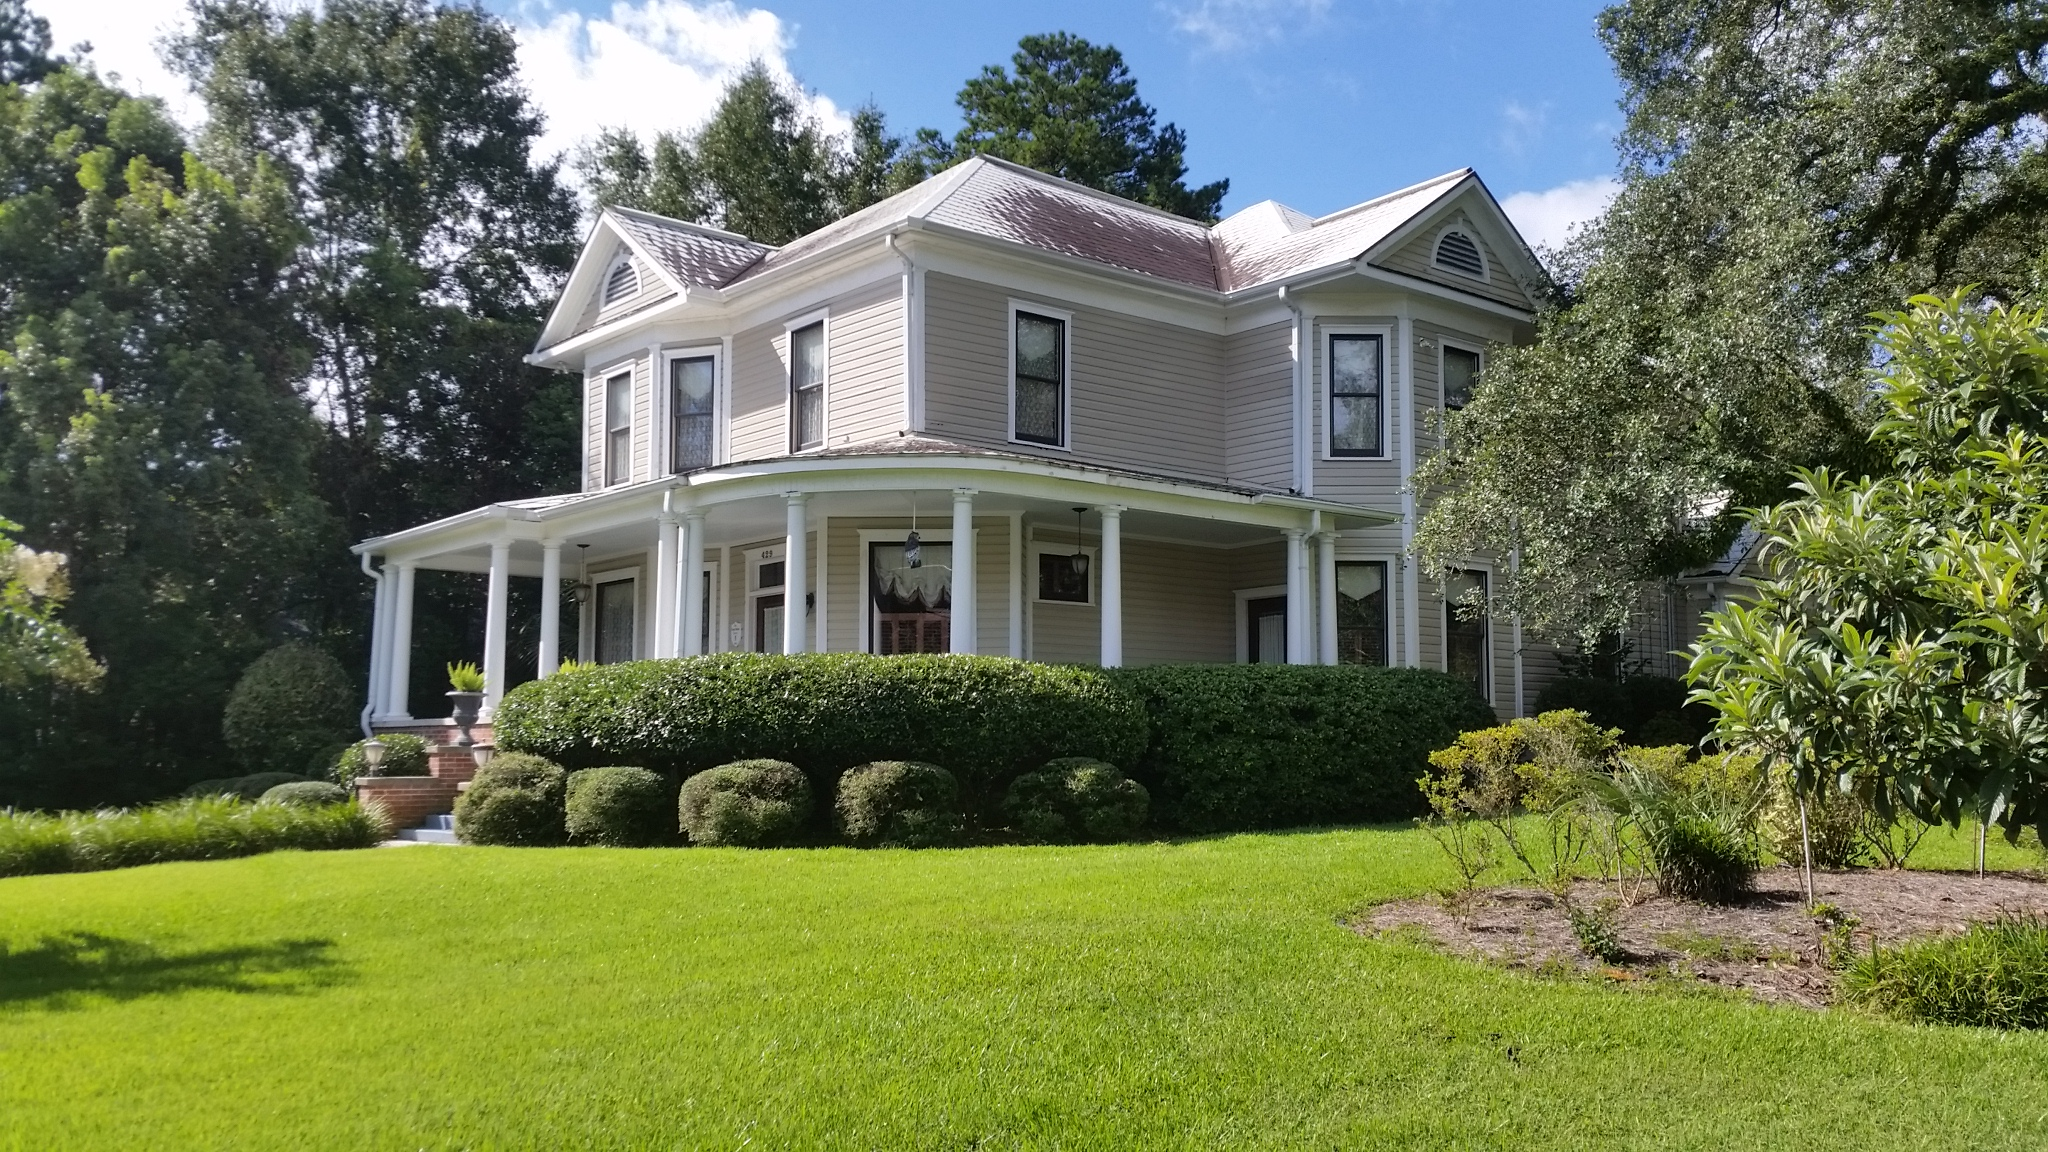 Thomasville Bed & Breakfast